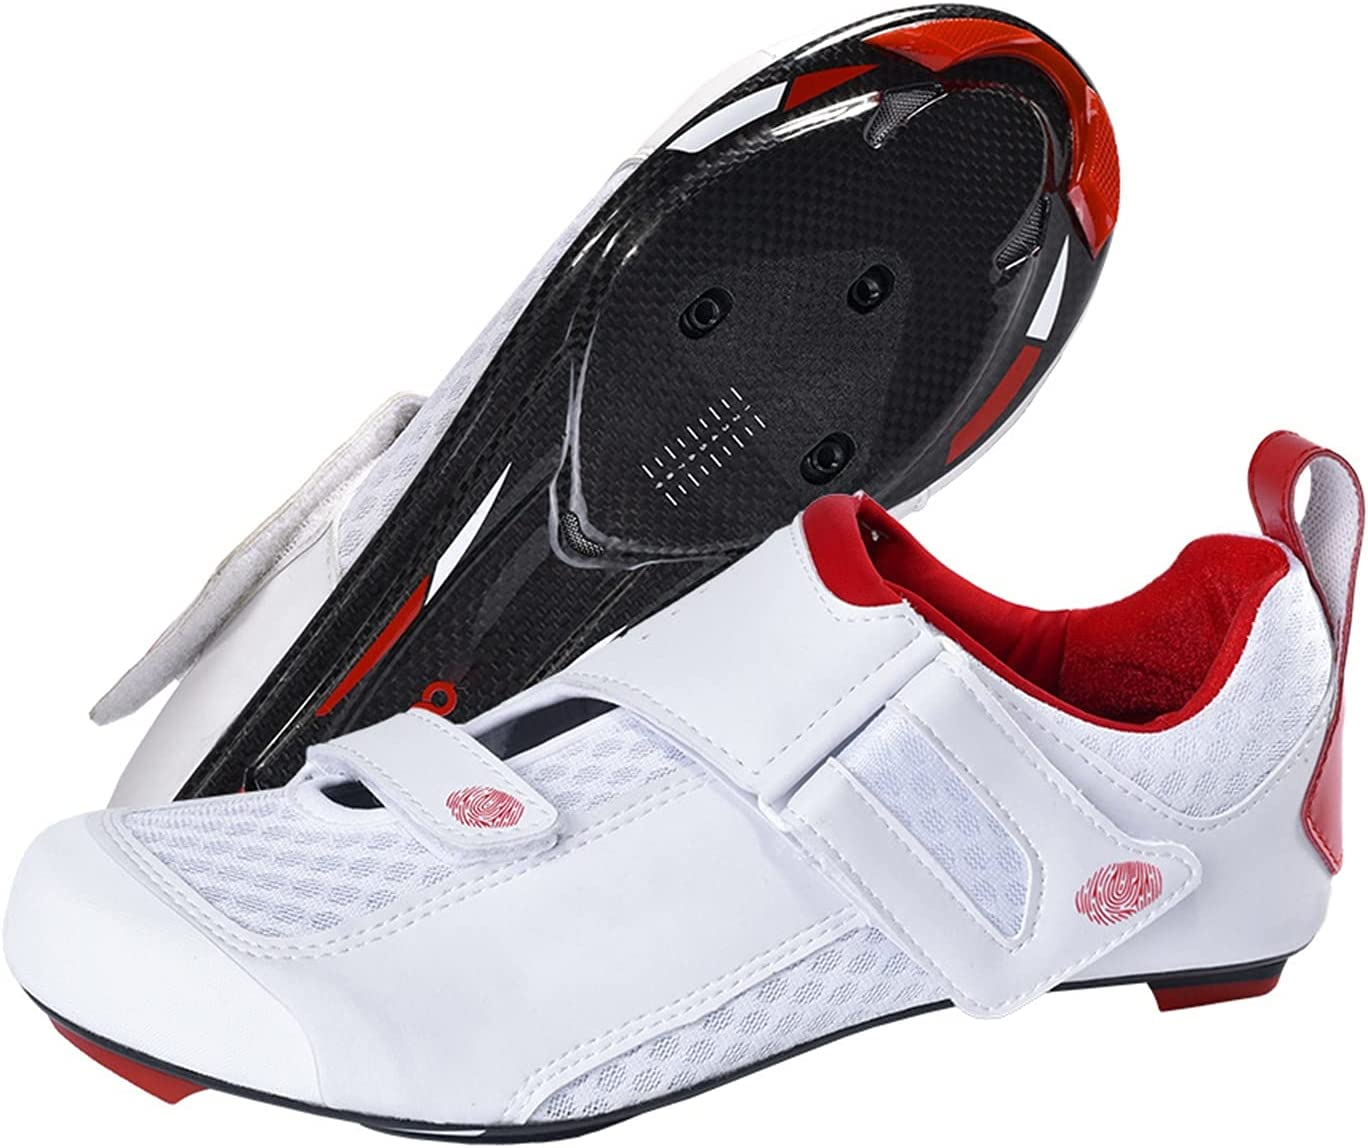 Cycling 40% OFF Cheap Sale Shoes Women Road Riding wit Max 58% OFF Mens Bike MTB